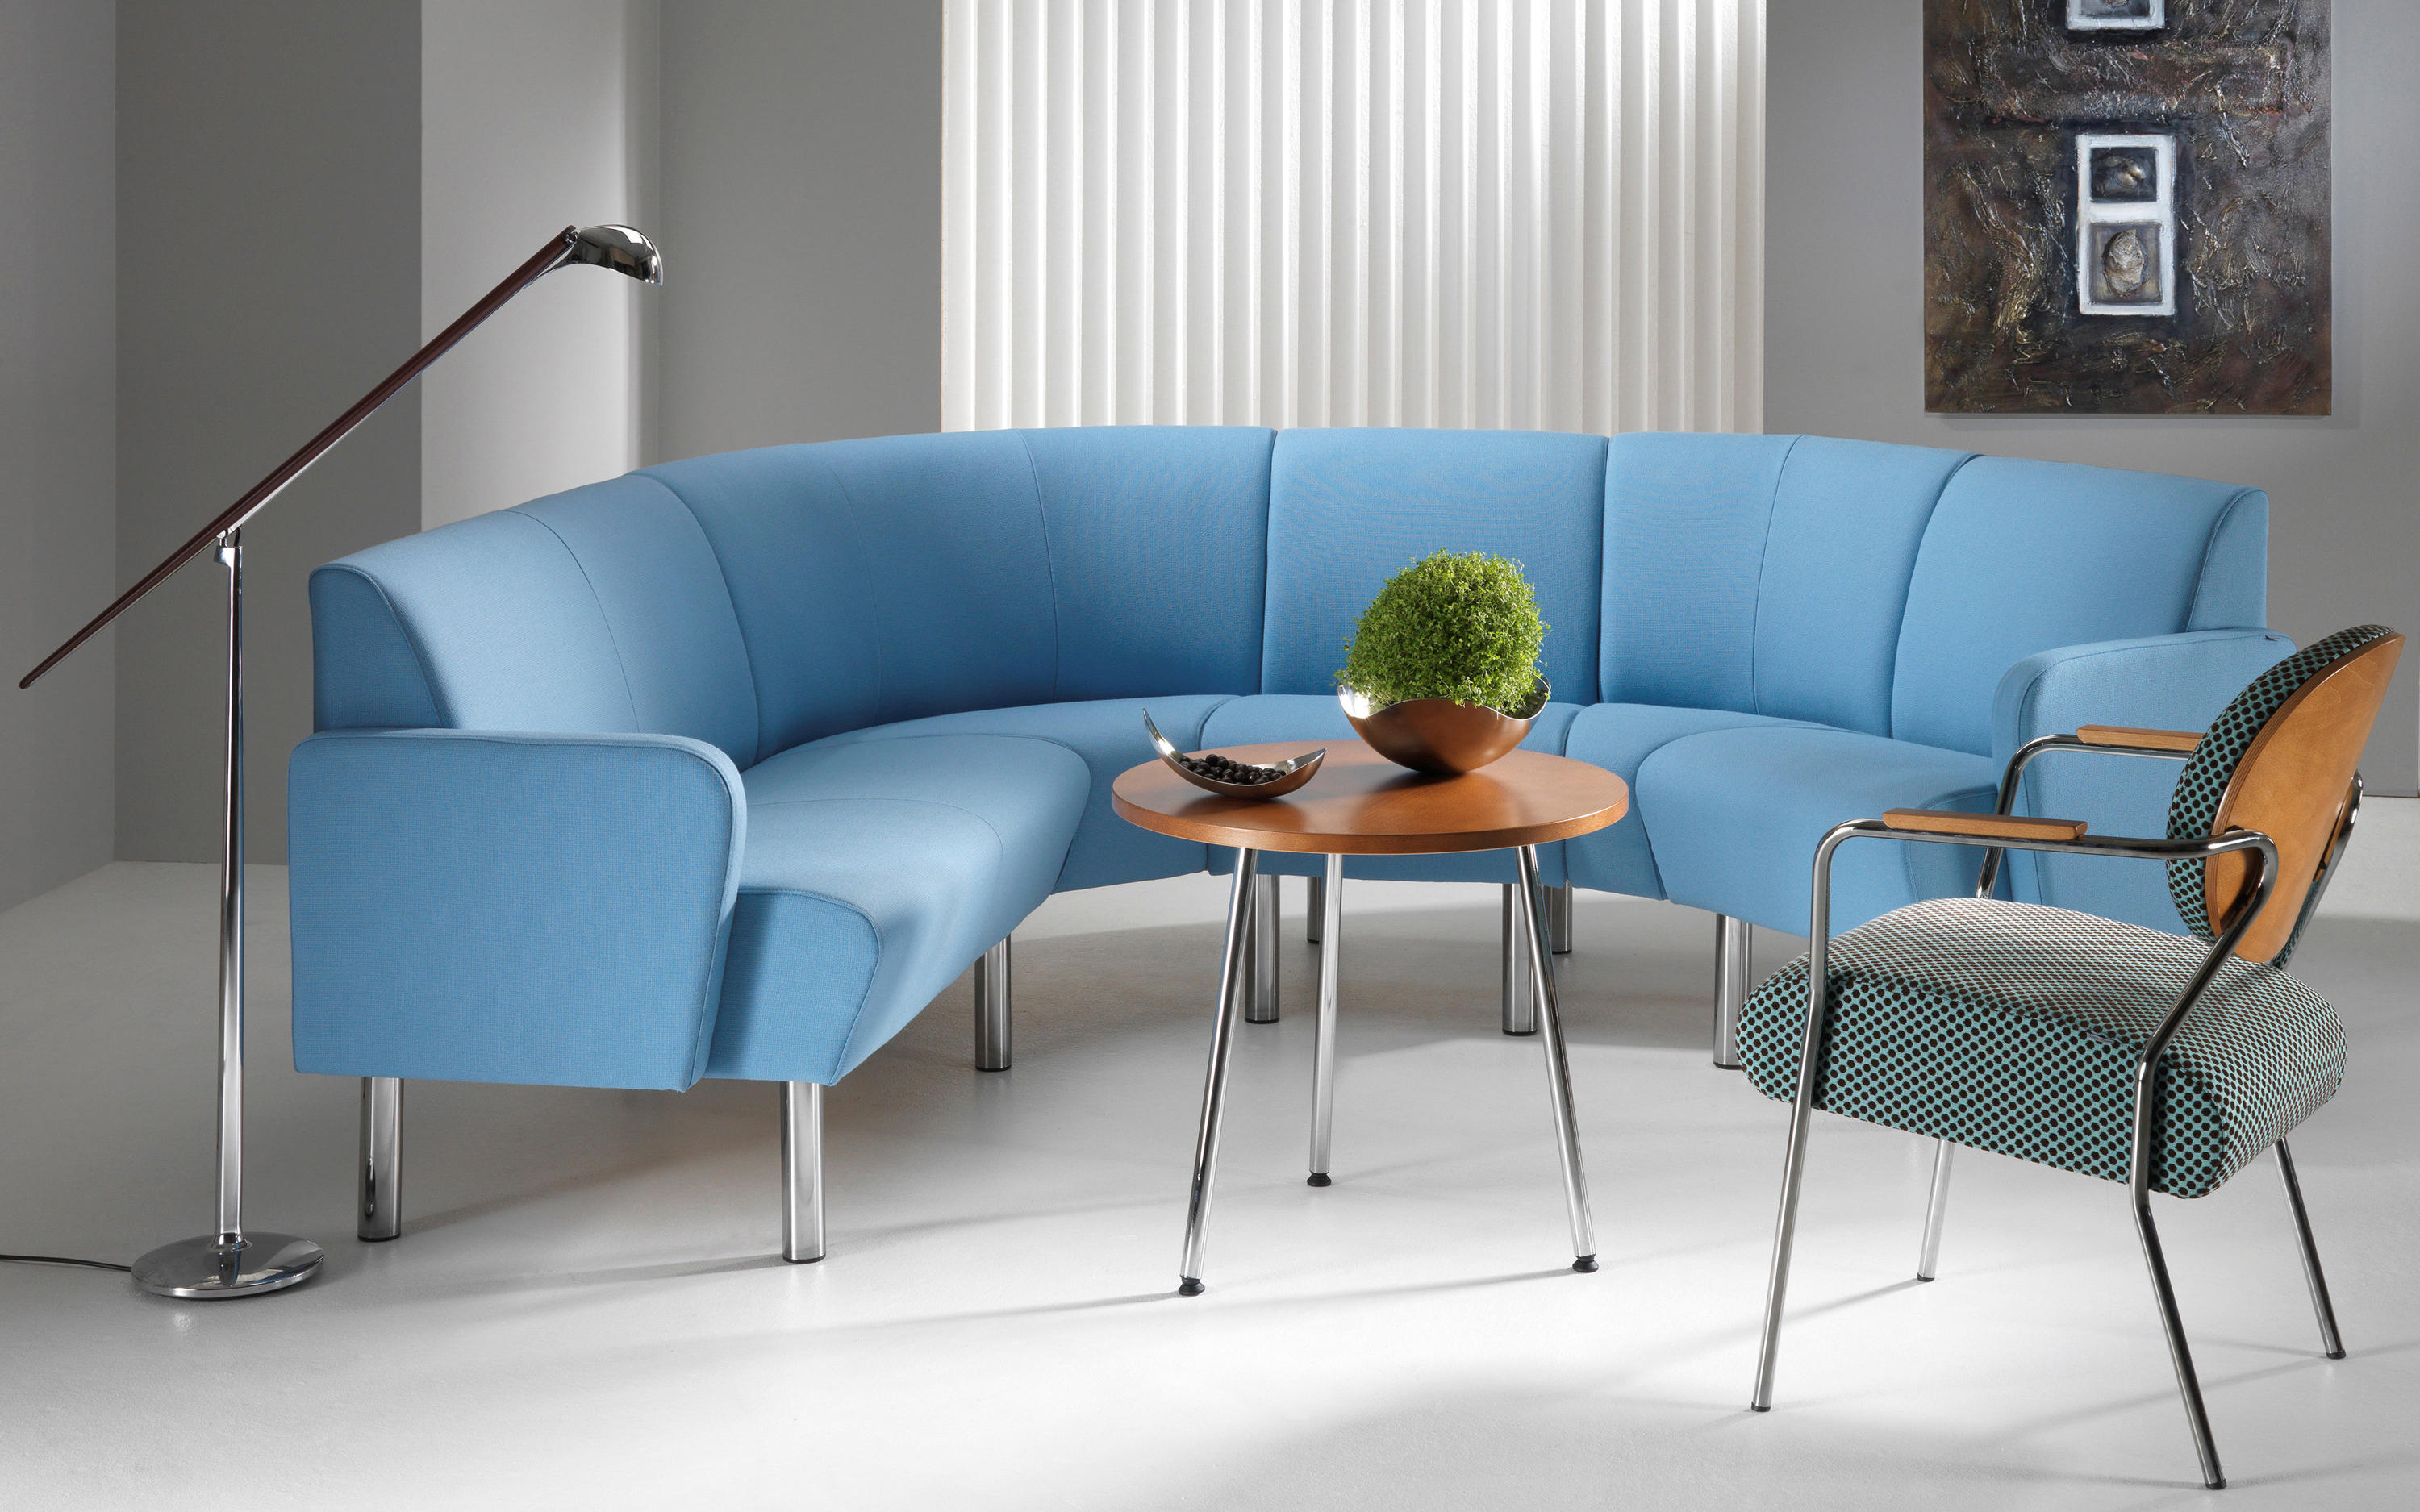 Modul Sofa Beautiful Modulsofa Elle U Loungesaet With Modul Sofa